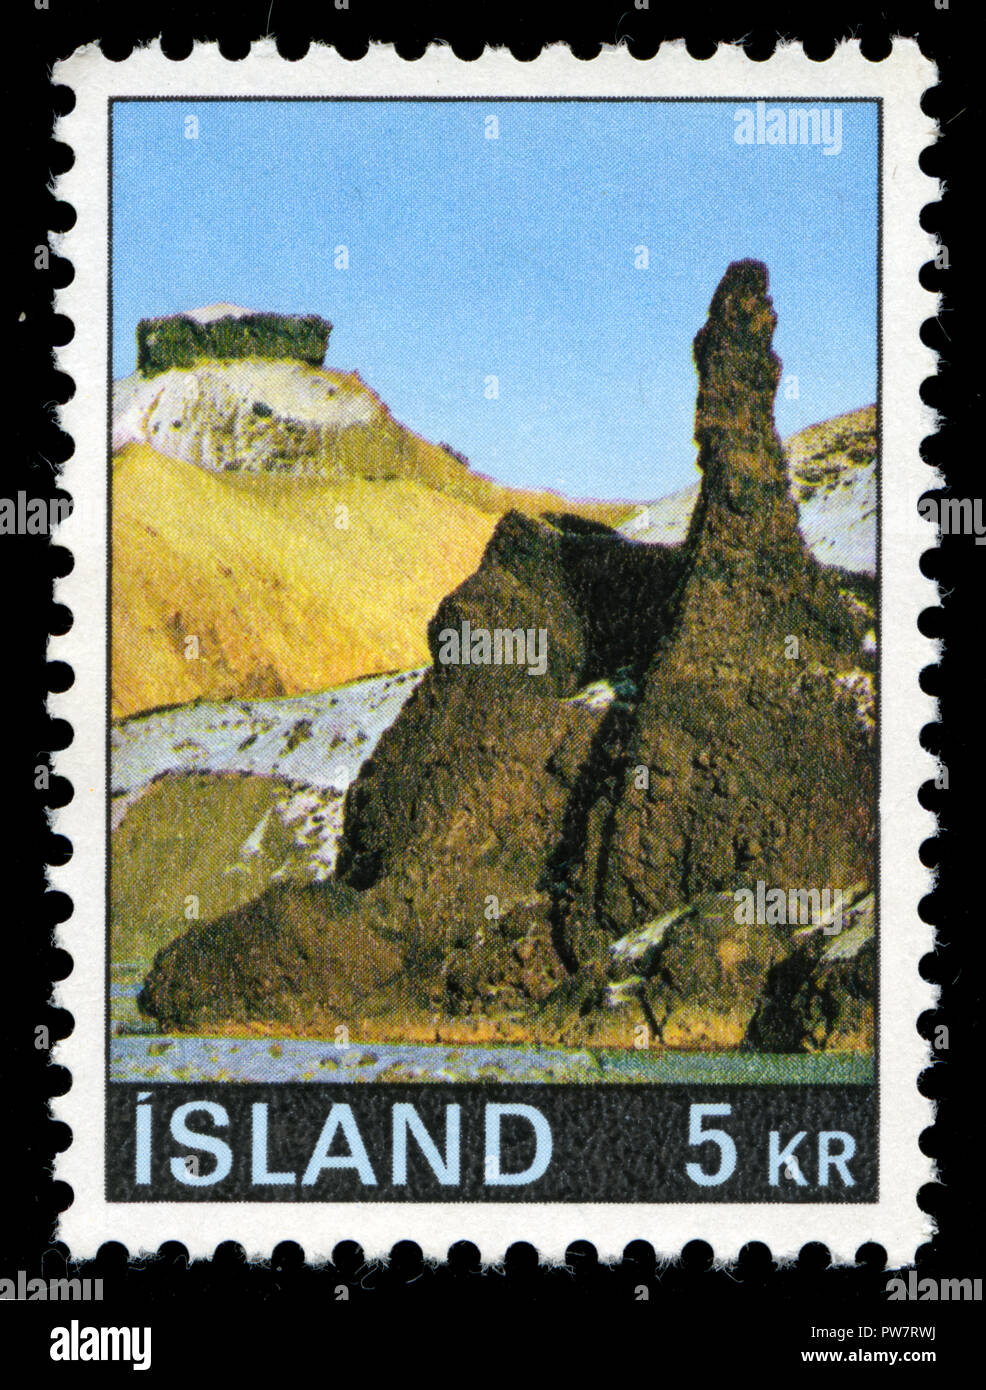 Postmarked stamp from Iceland in the Landscapes series issued in 1970 - Stock Image